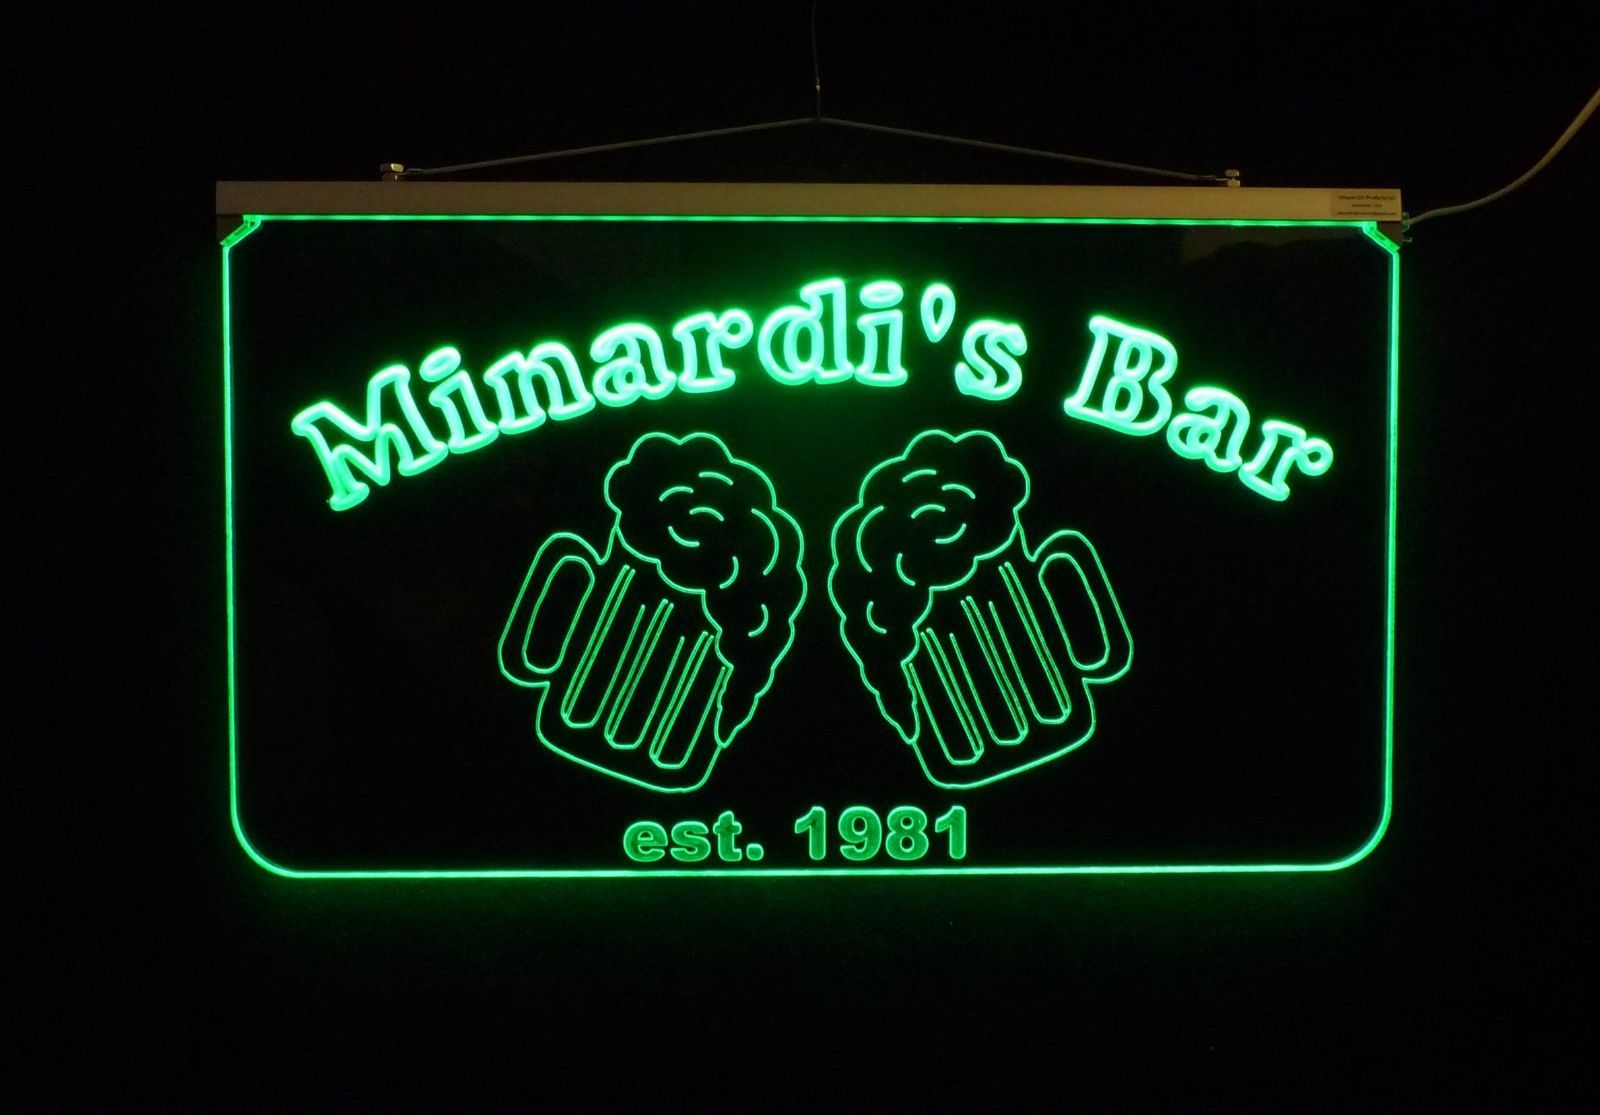 Personalized LED Bar/Pub Sign, Design your own Sign image 4